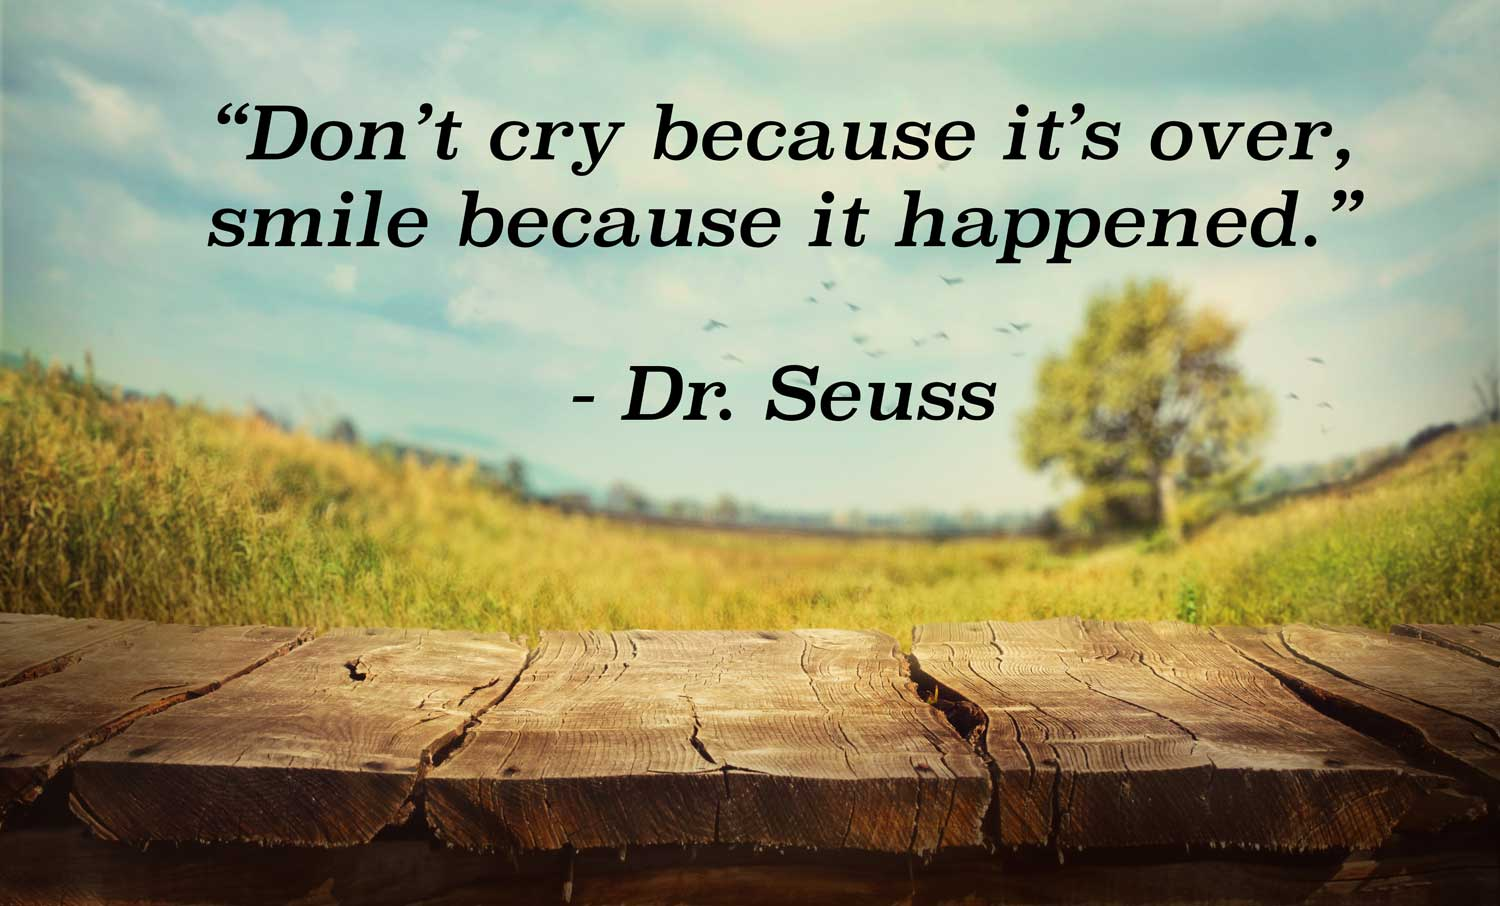 Don't cry because it's over, smile because it happened – HMA